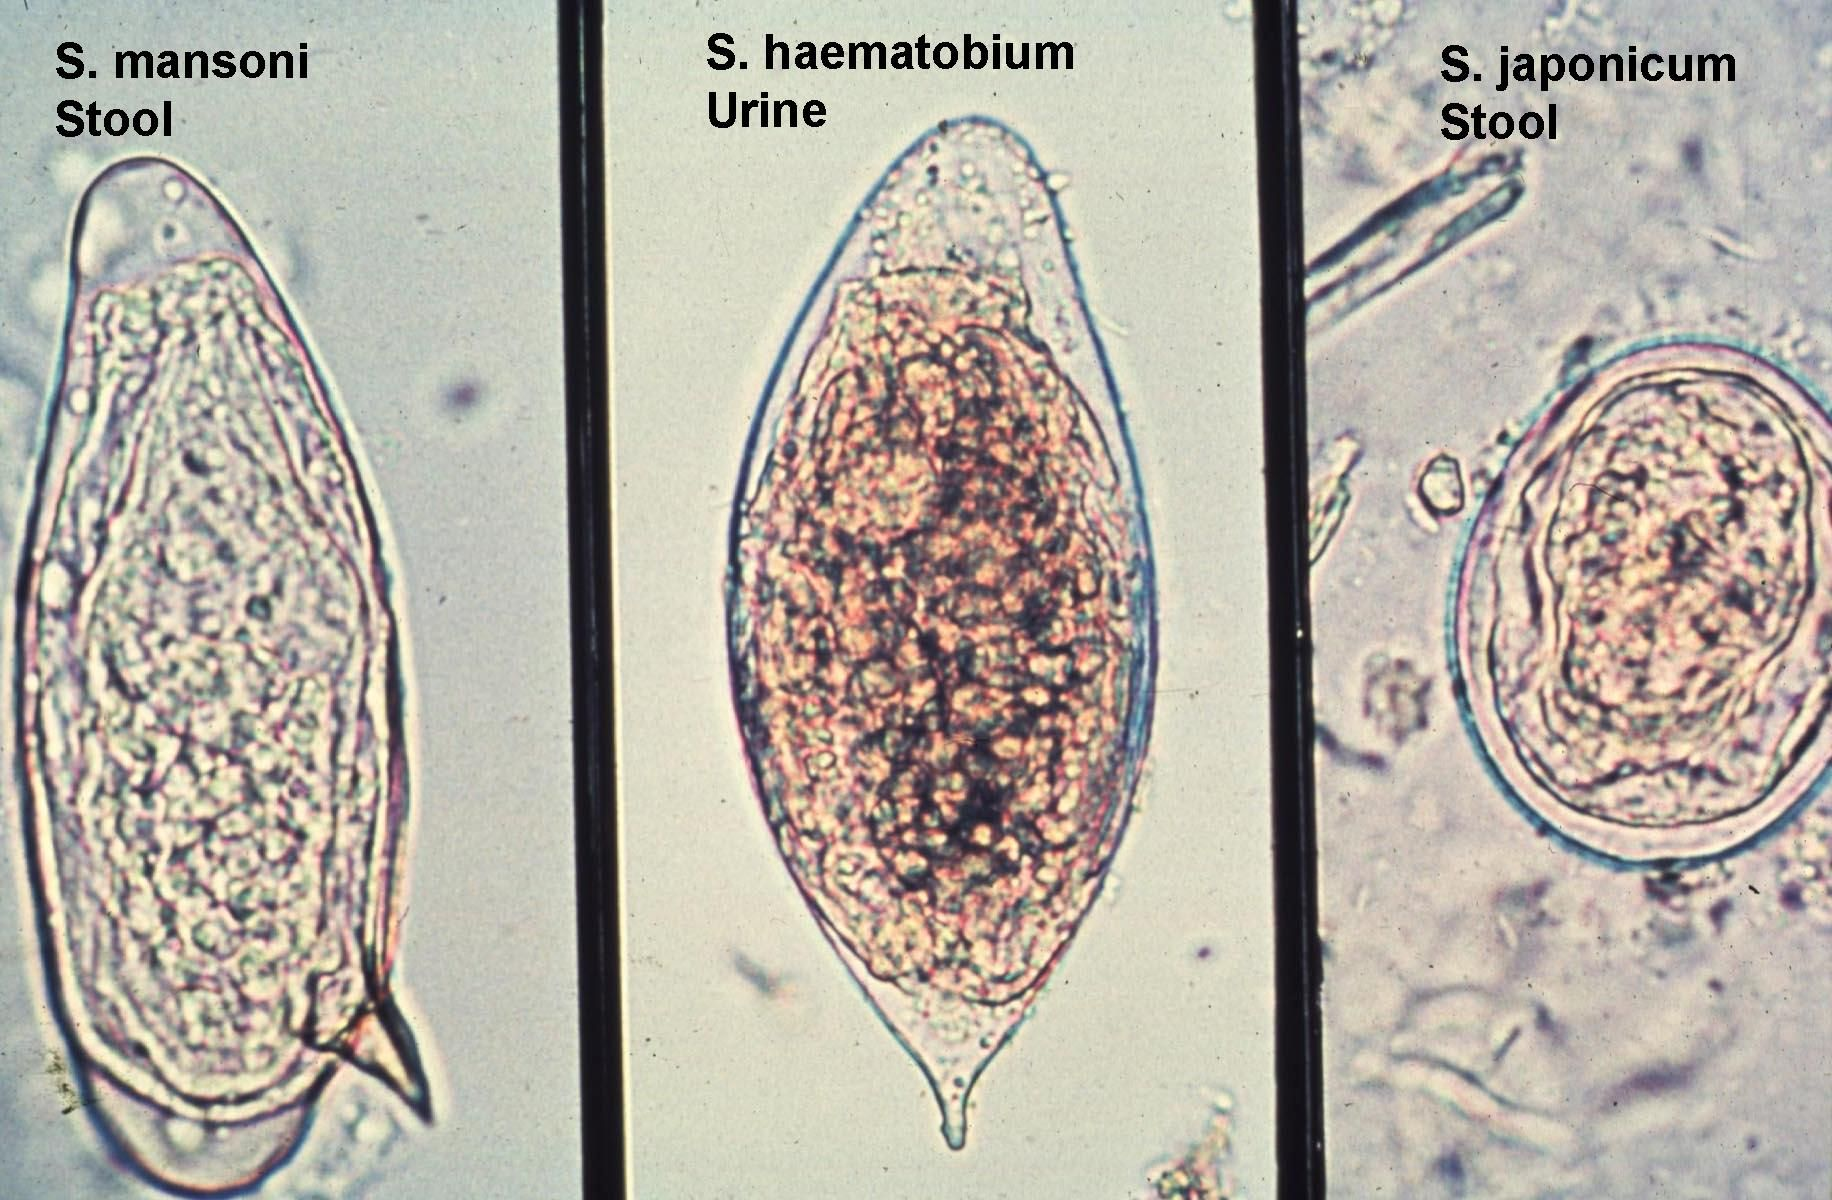 Schistosomiasis eggs in stool